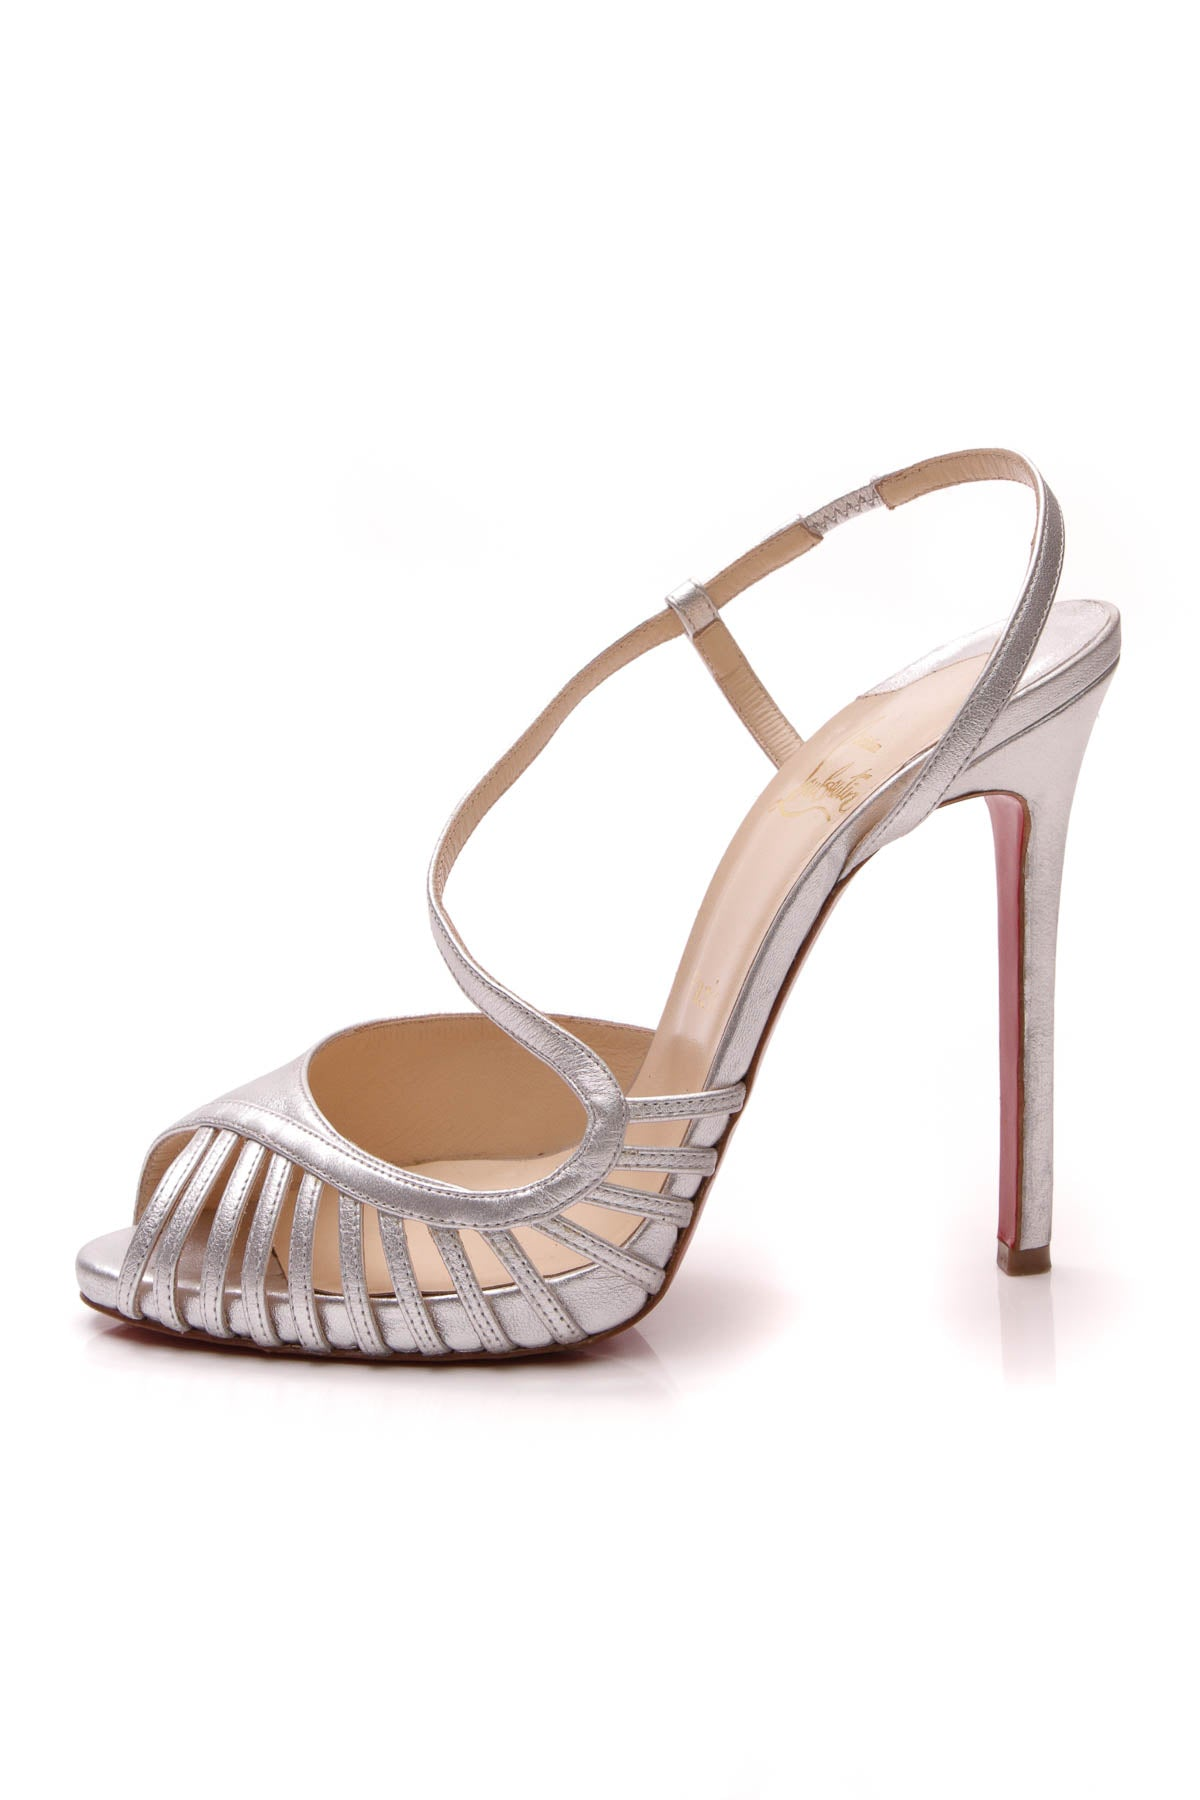 buy popular f58b0 7b753 Christian Louboutin Caged Strappy Heels - Silver Size 39 ...